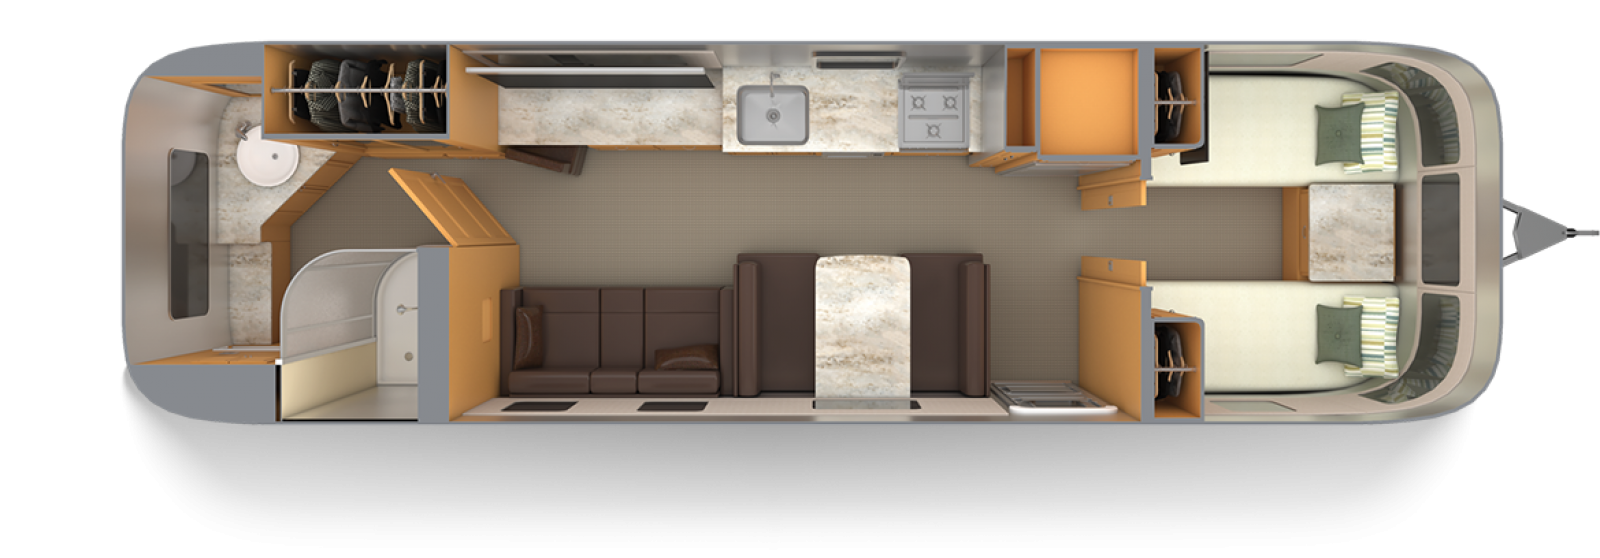 Airstream-Classic-33FB-Twin-Cognac-Maple-with-Chestnut-Floor-Plan